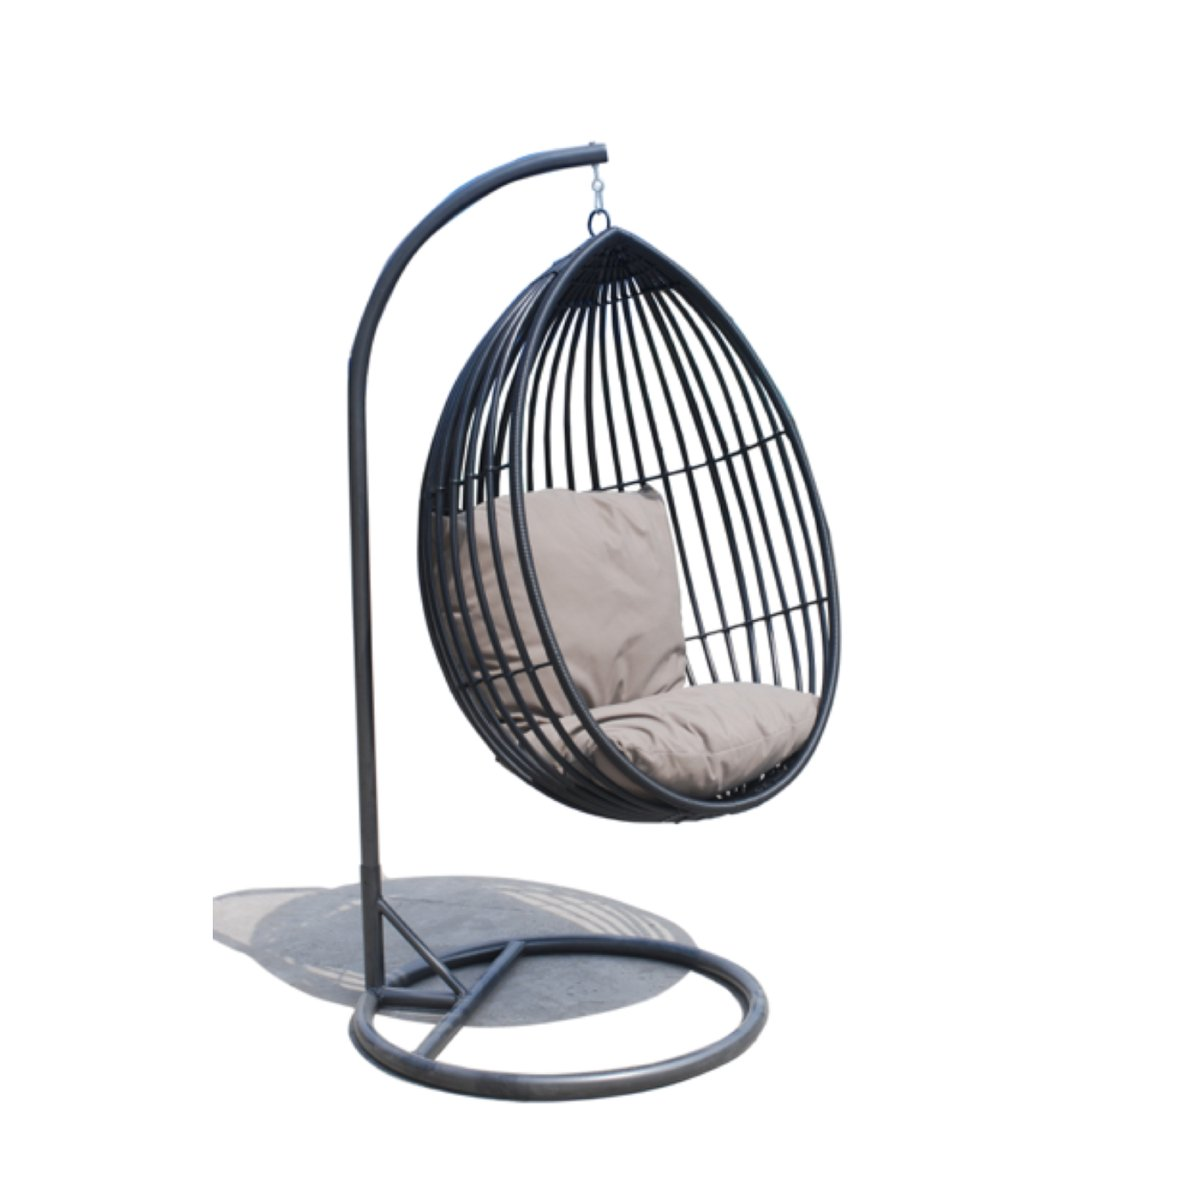 KOALA Hanging Egg Chair by OSMEN Outdoor Furniture, a Outdoor Chairs for sale on Style Sourcebook